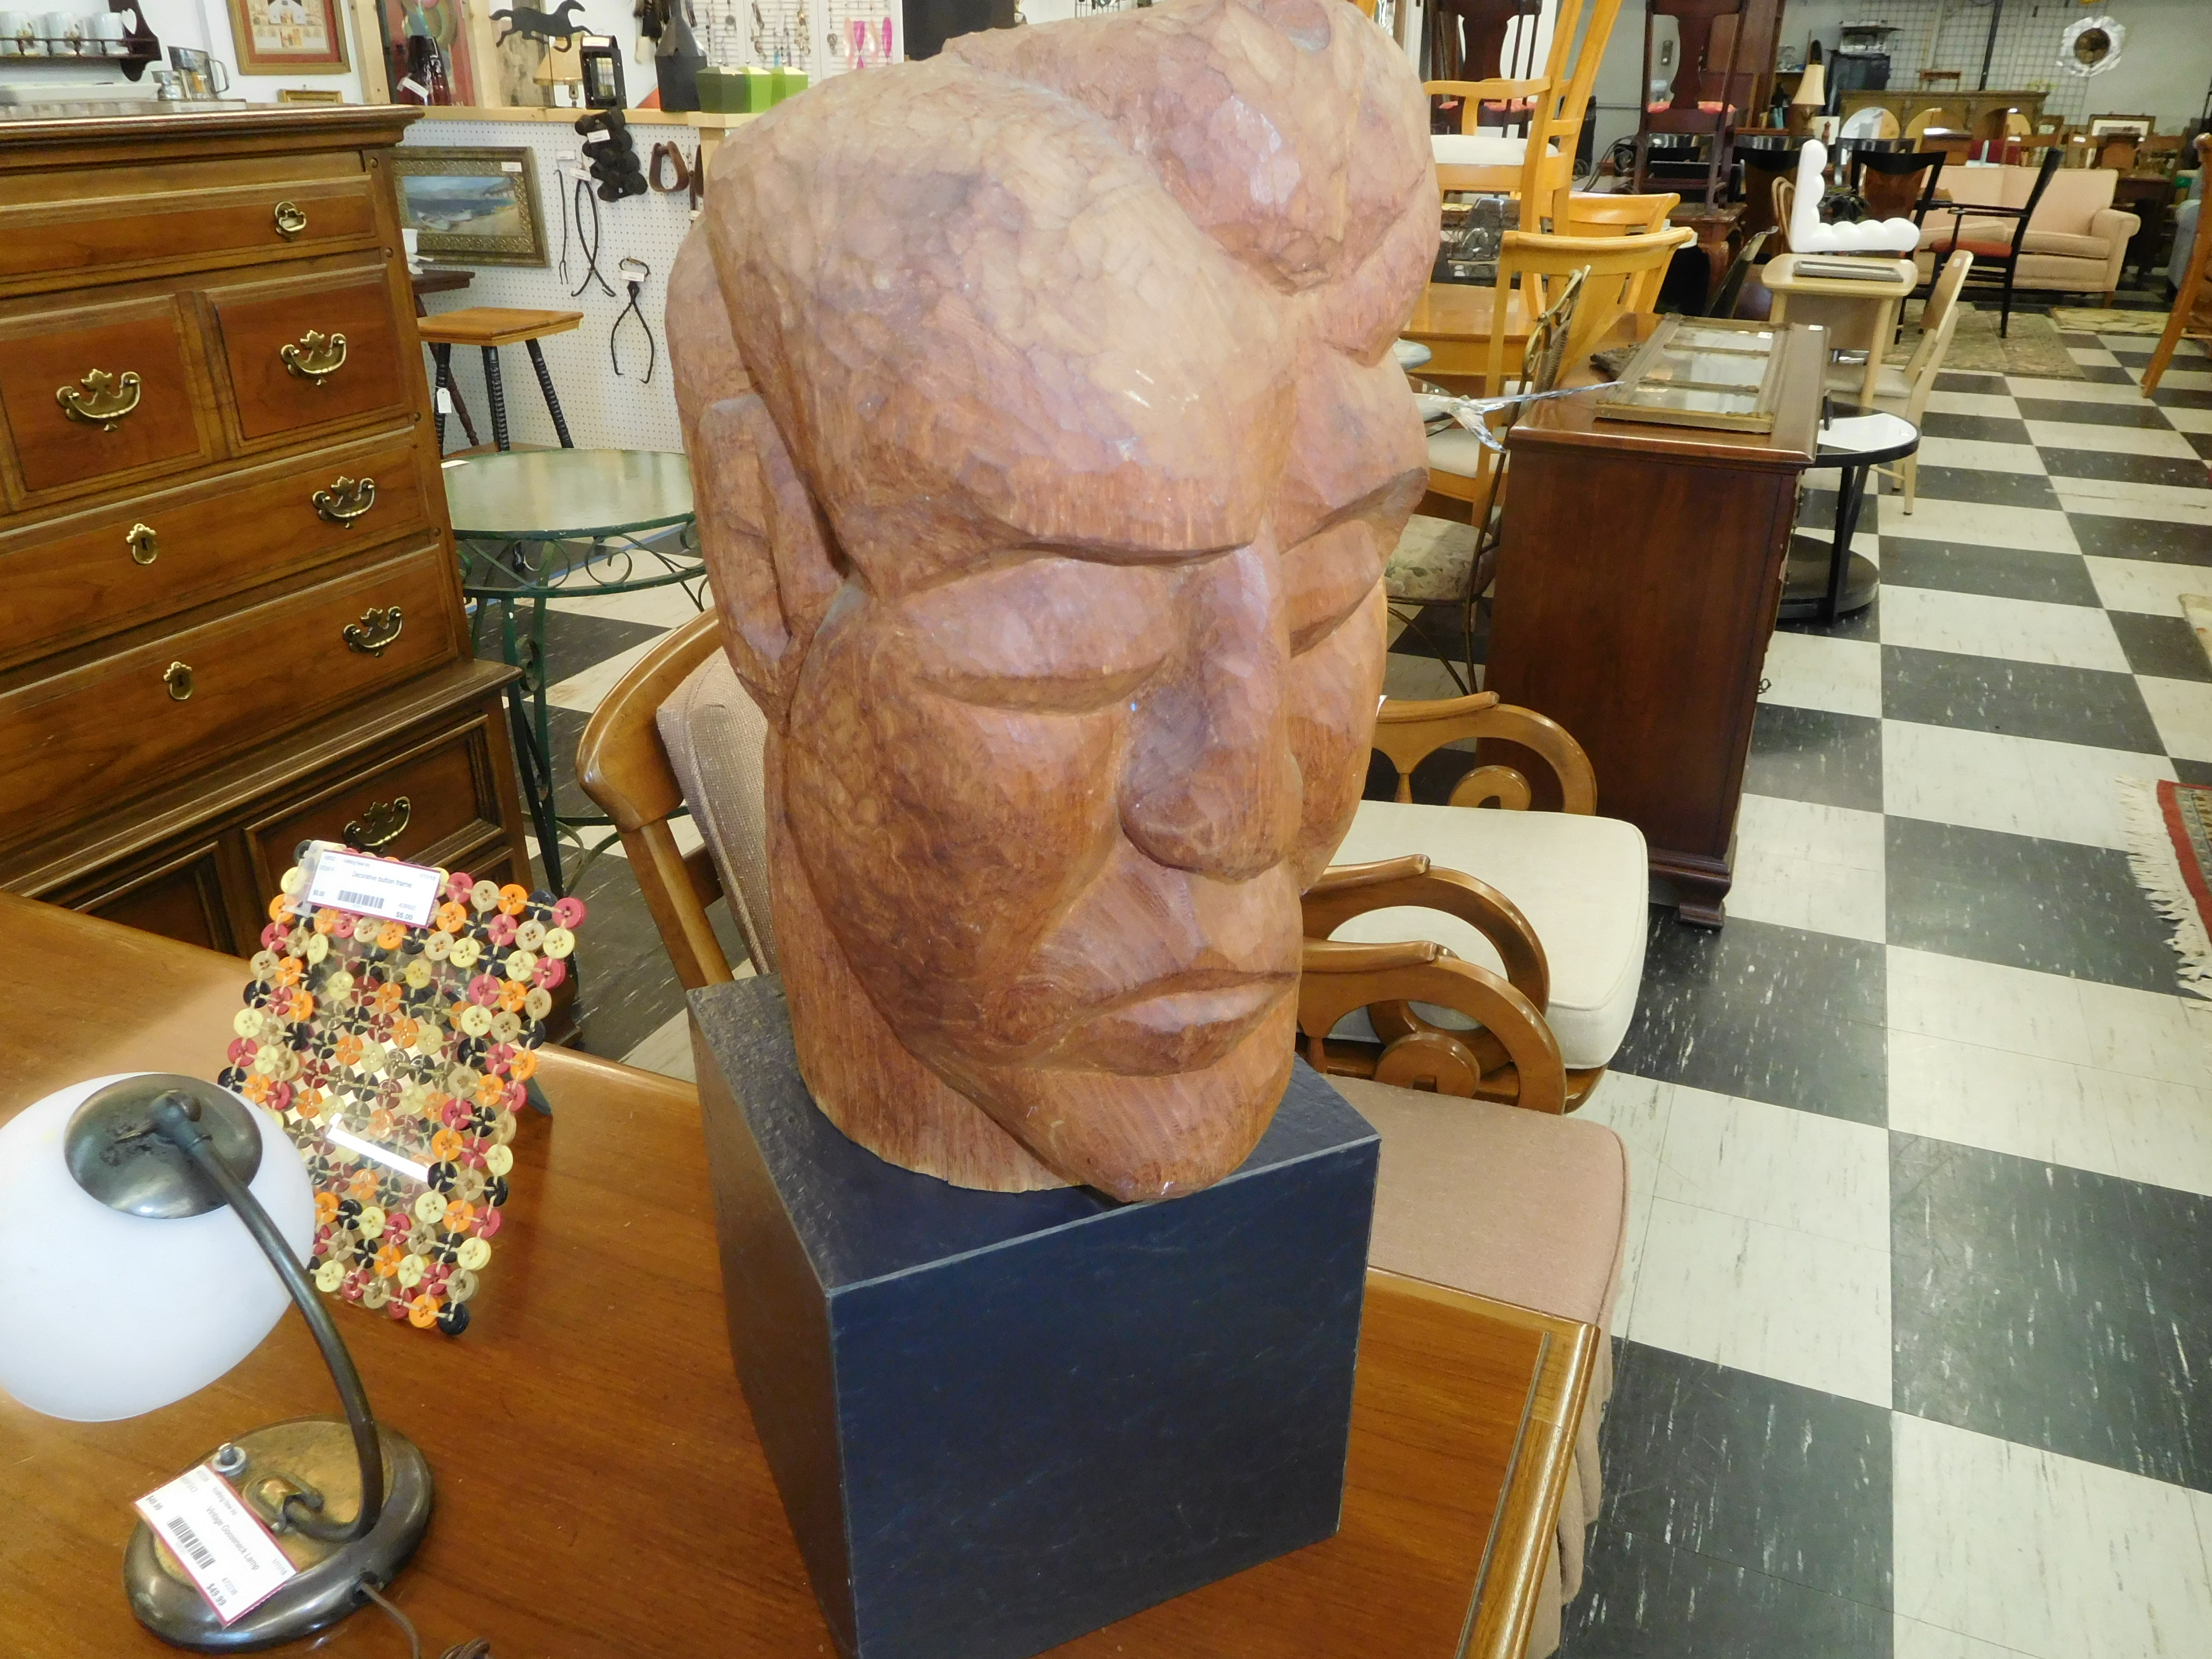 Sculpture - Wooden Head Carving